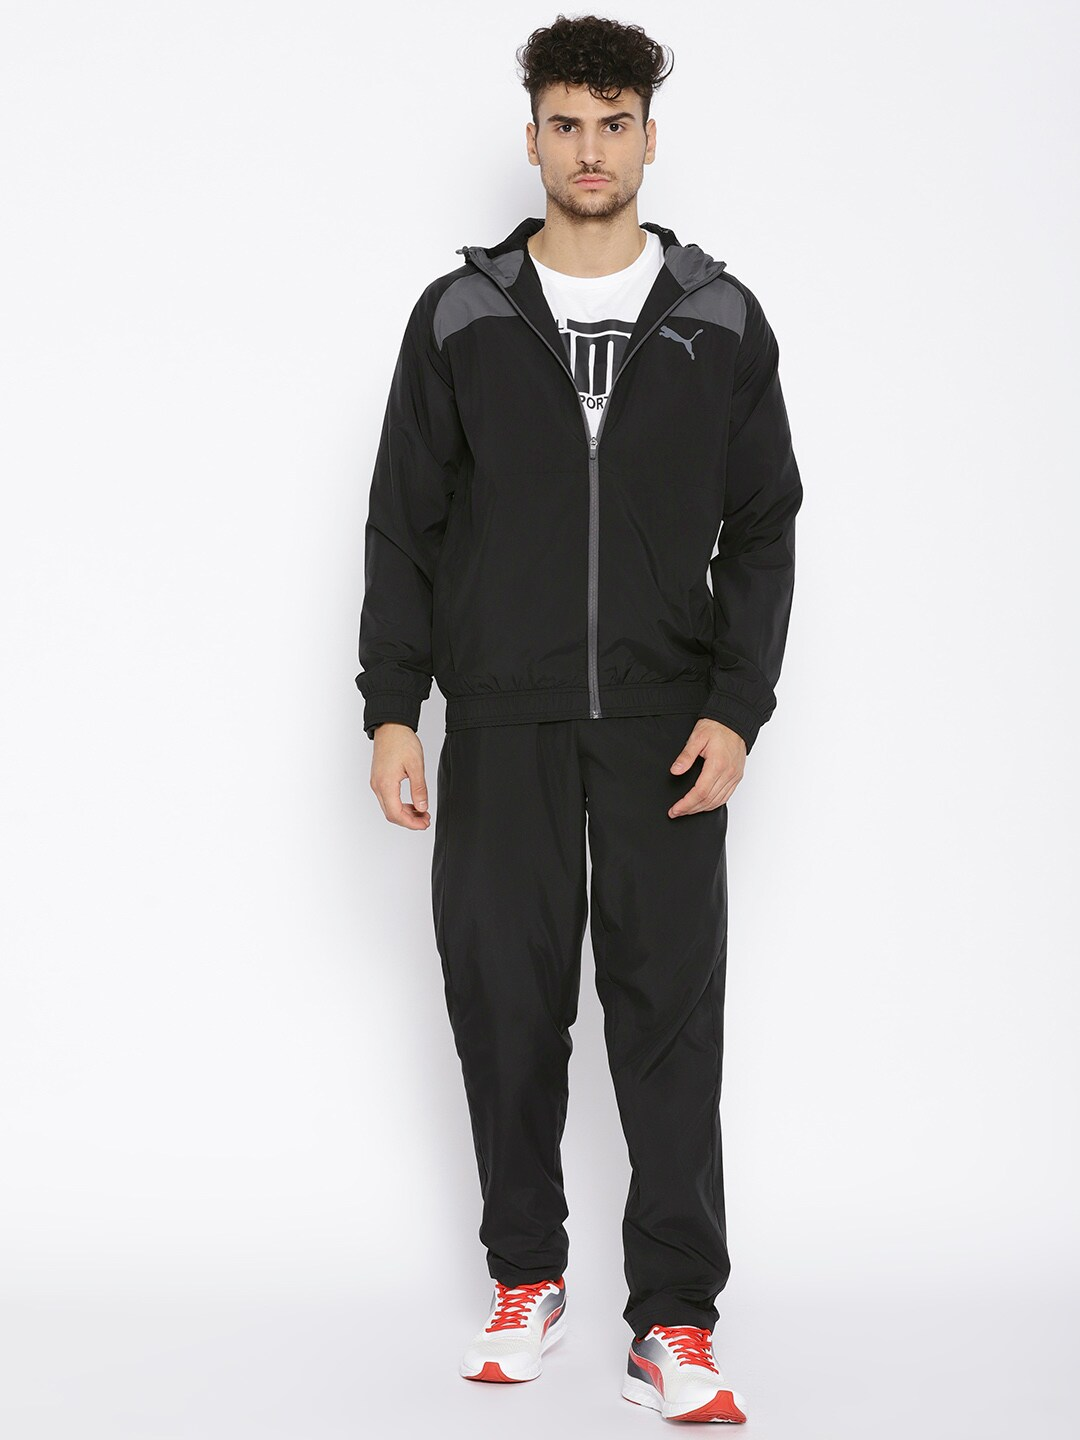 2be37d2bf340 Men s Puma Tracksuits - Buy Puma Tracksuits for Men Online in India